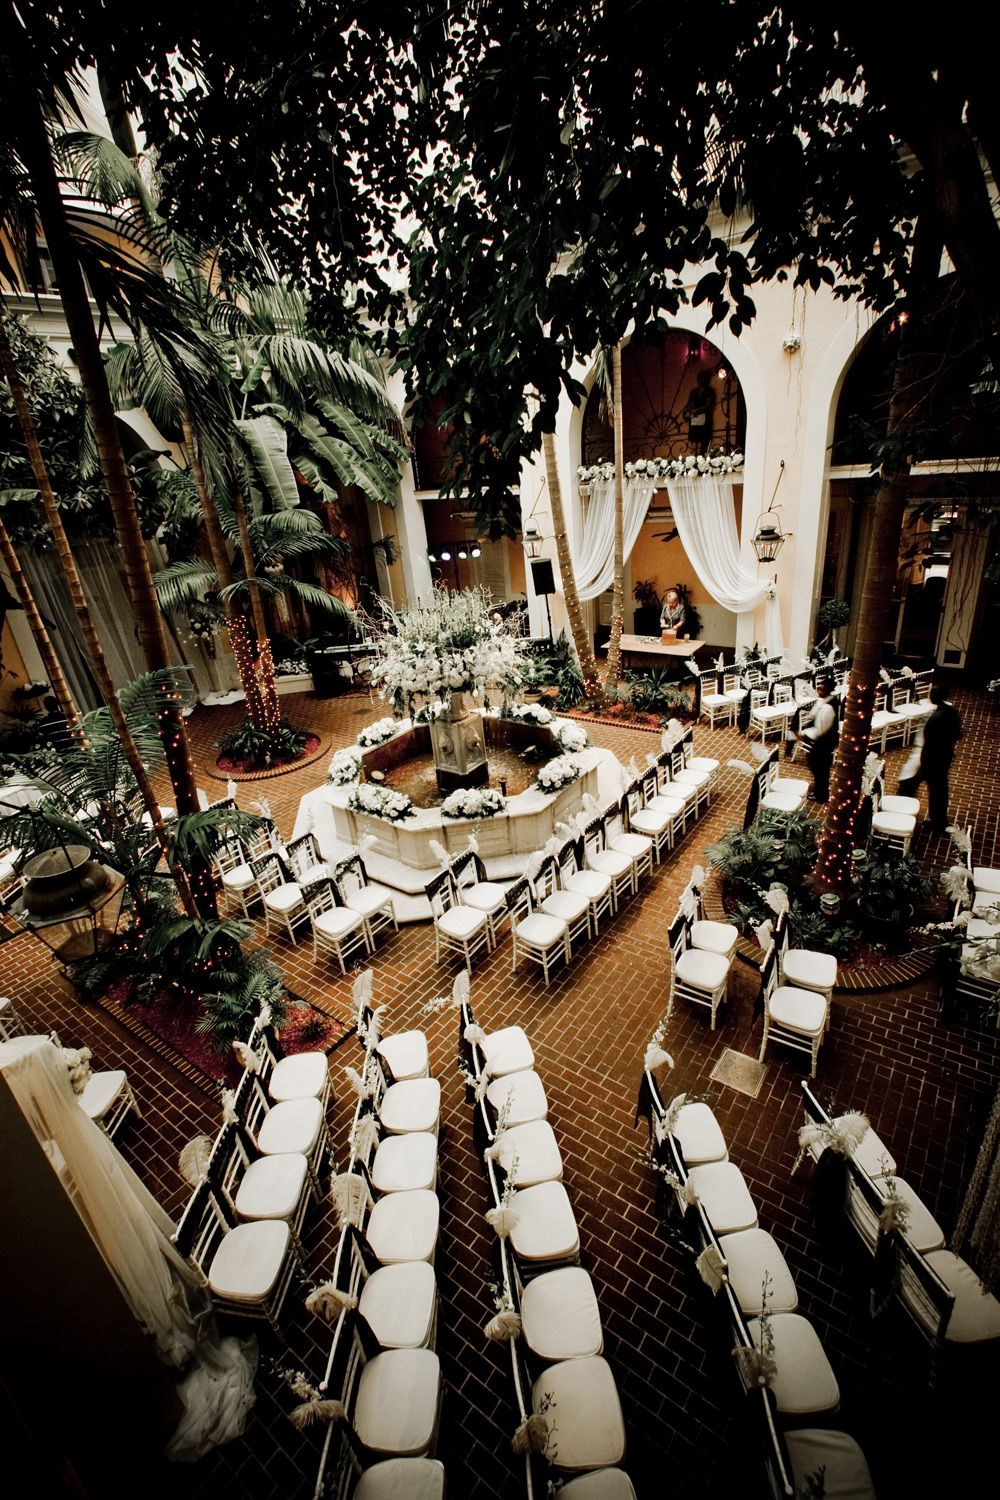 Saint Louis Hotel Courtyard Nola We Were Married Here On The Hottest Day Of